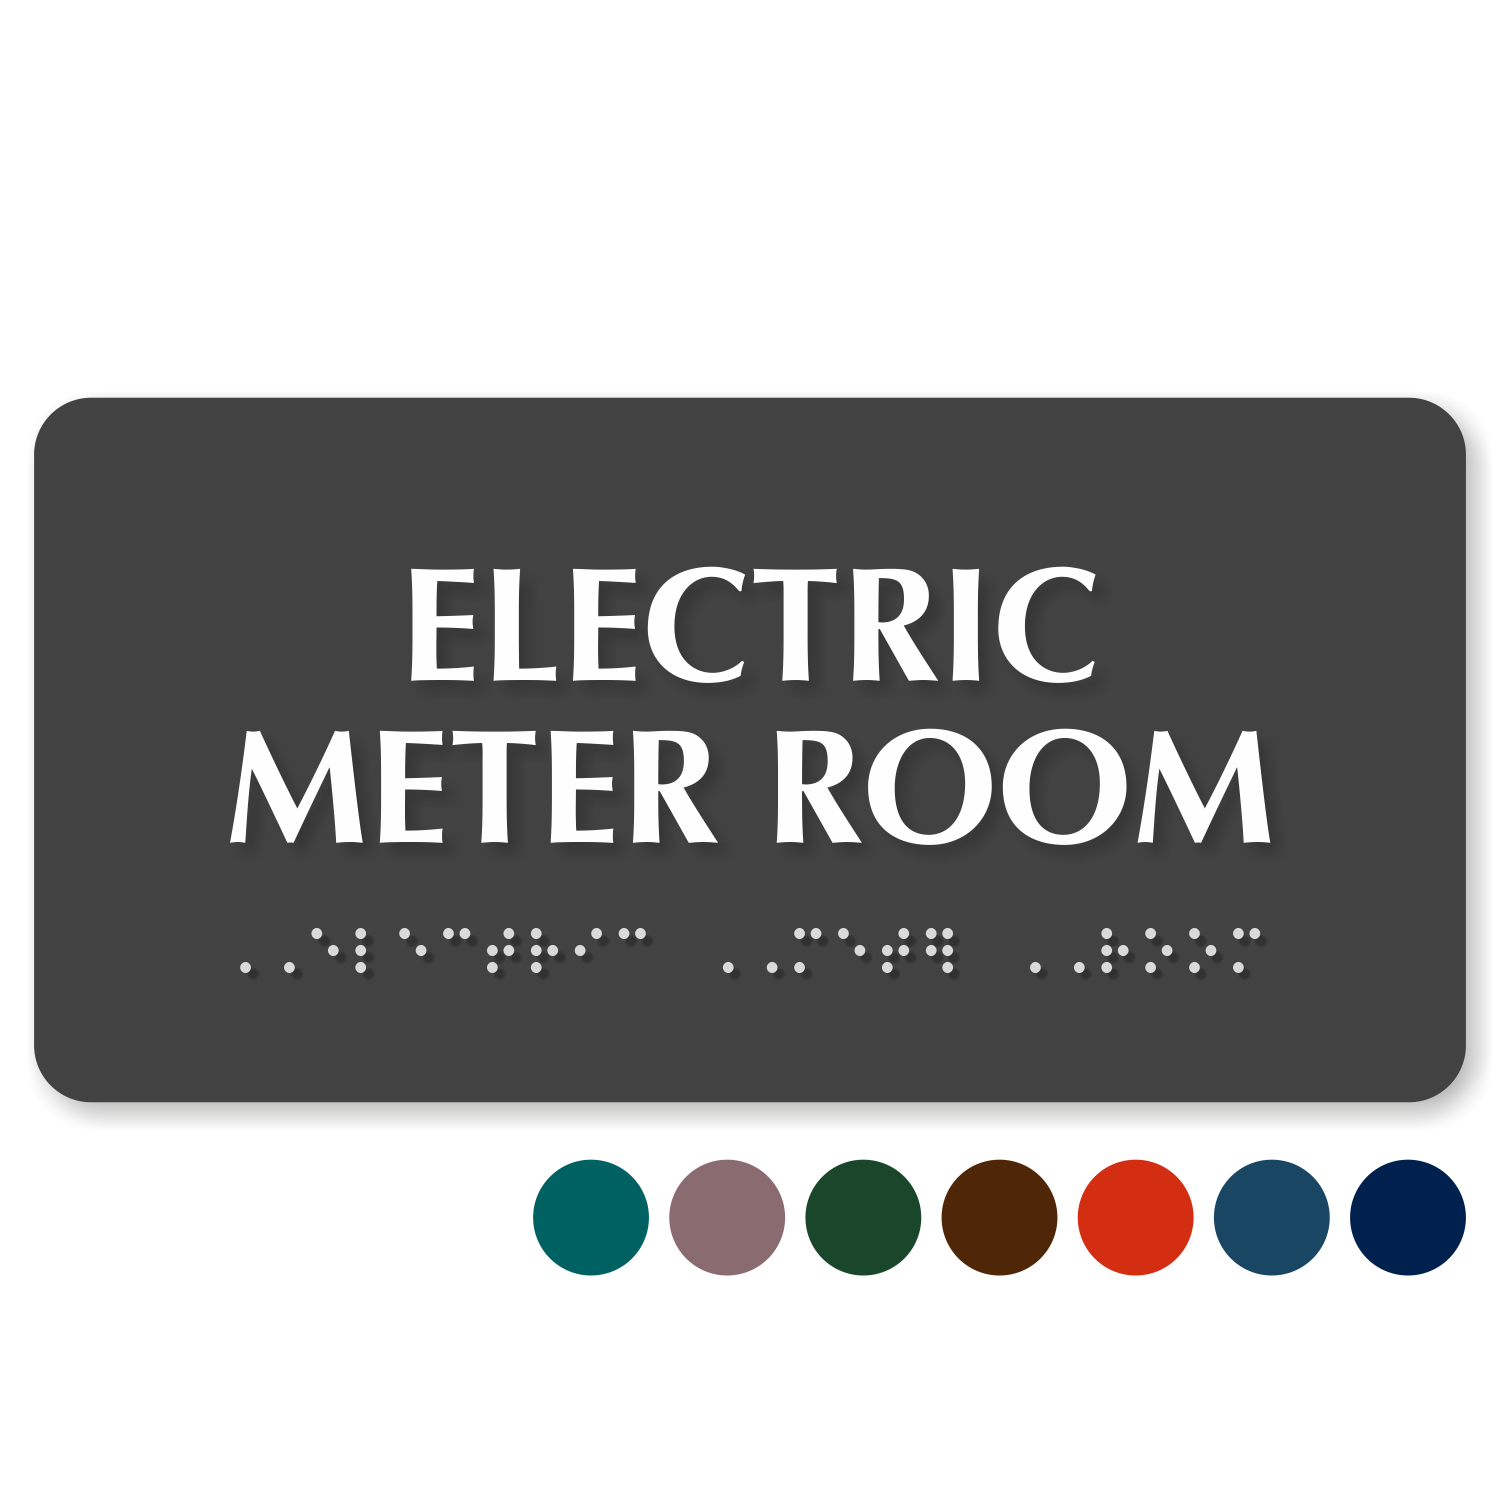 Meter Room Signs - Electric Meter Room Signs